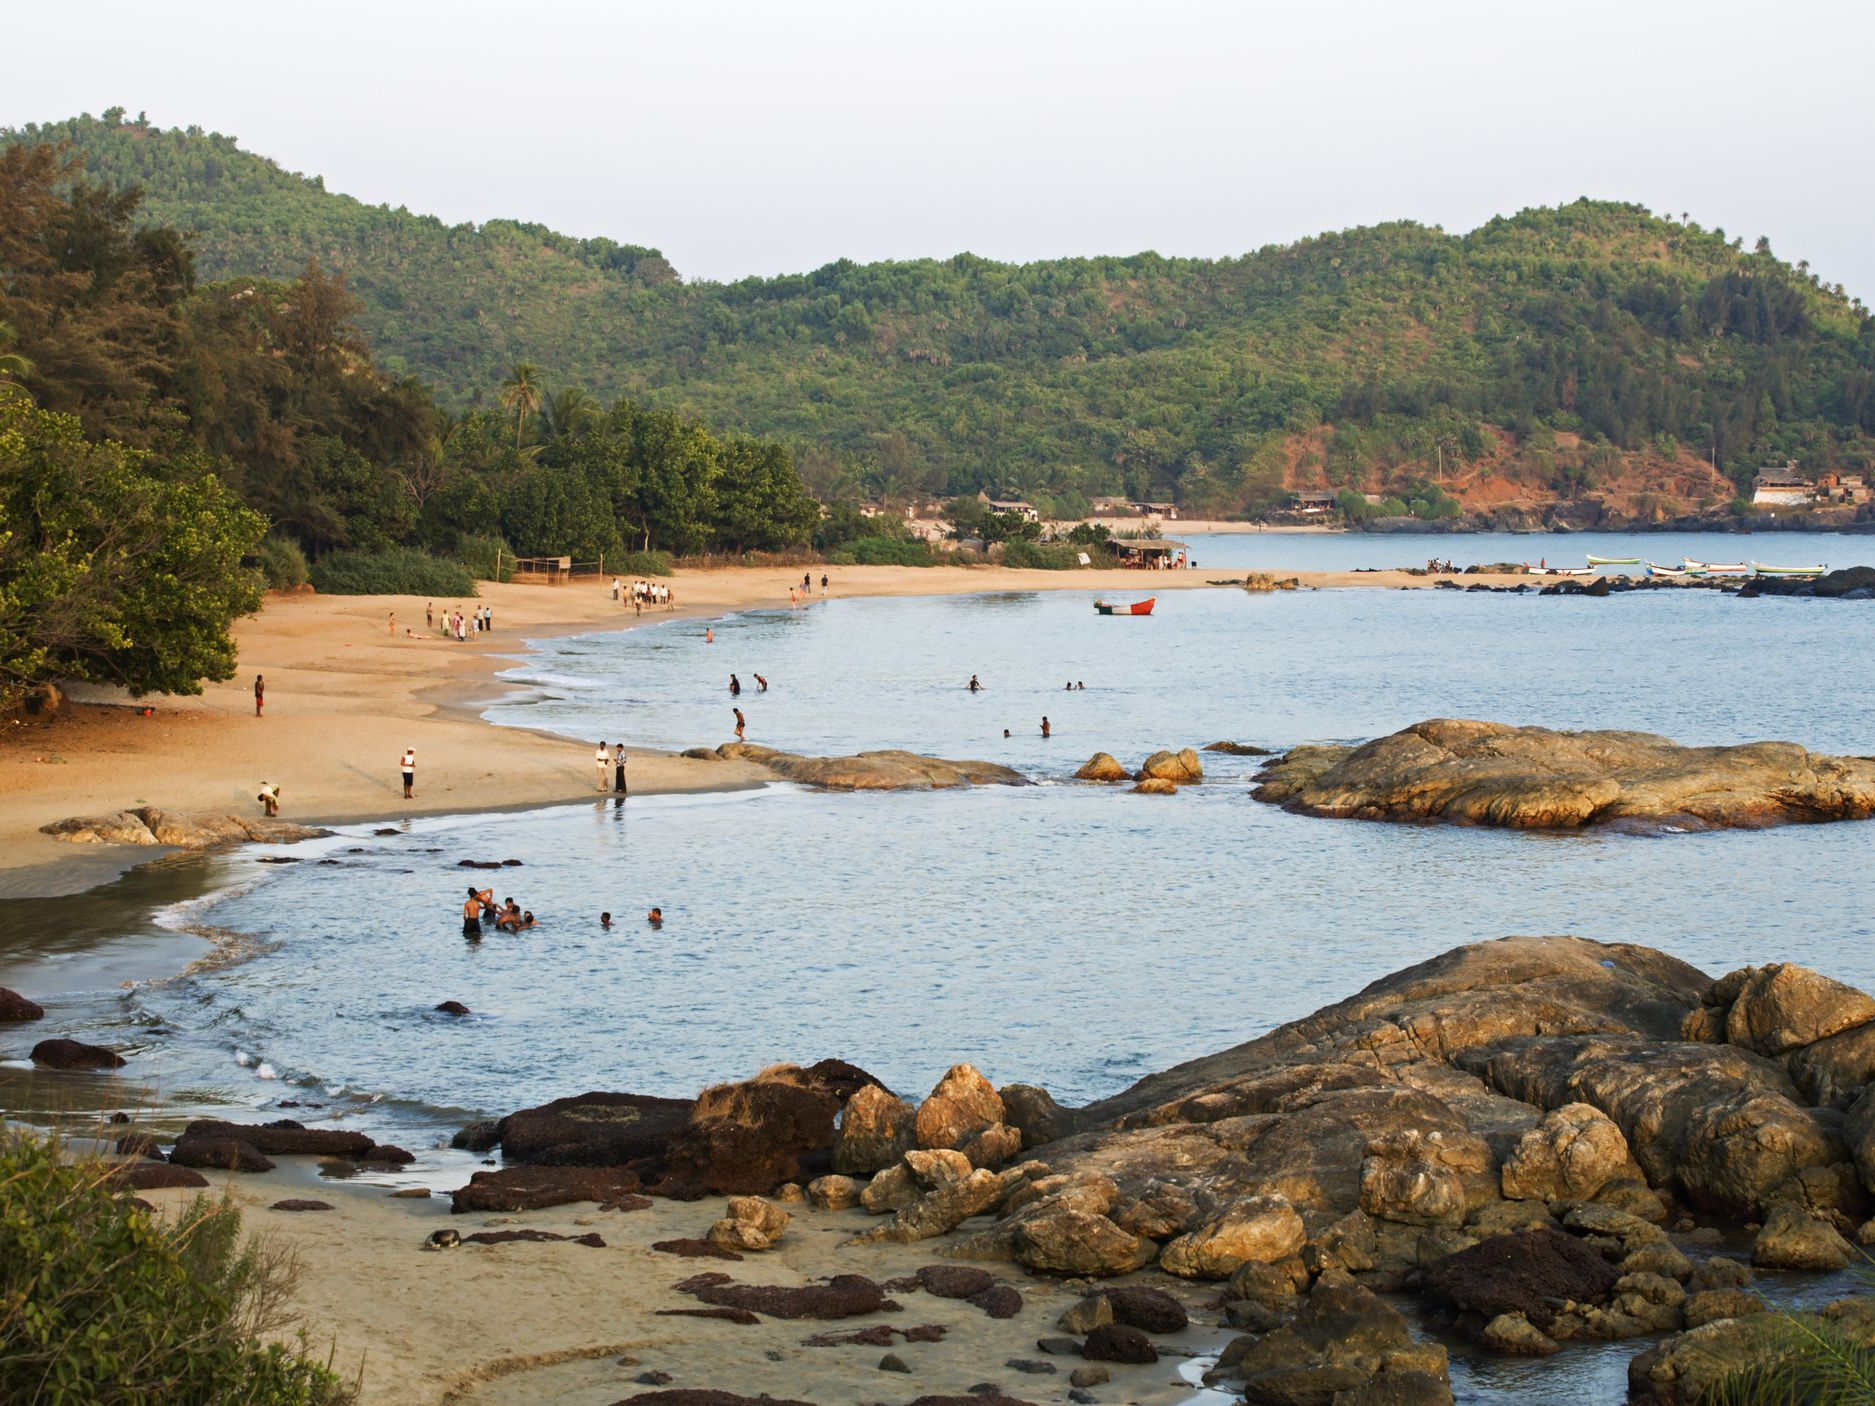 Gokarna Beach in India: What to Know Before You Go